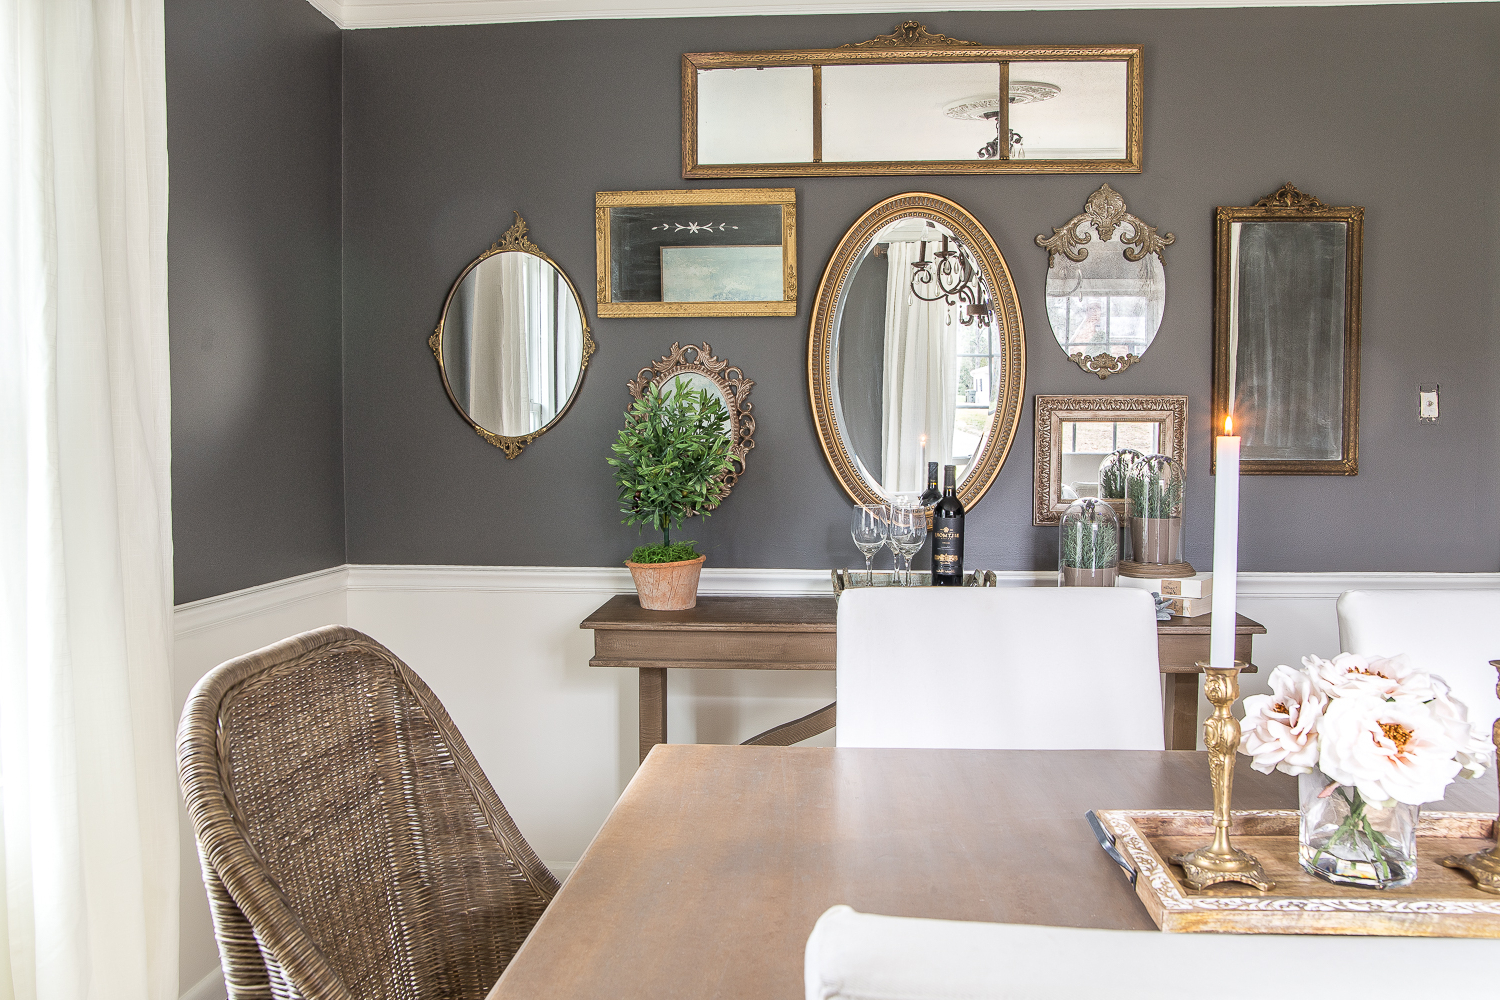 Gallery Wall Mirrors With Famous Mirror Gallery Wall From Thrifted Frames – Bless'er House (View 3 of 20)